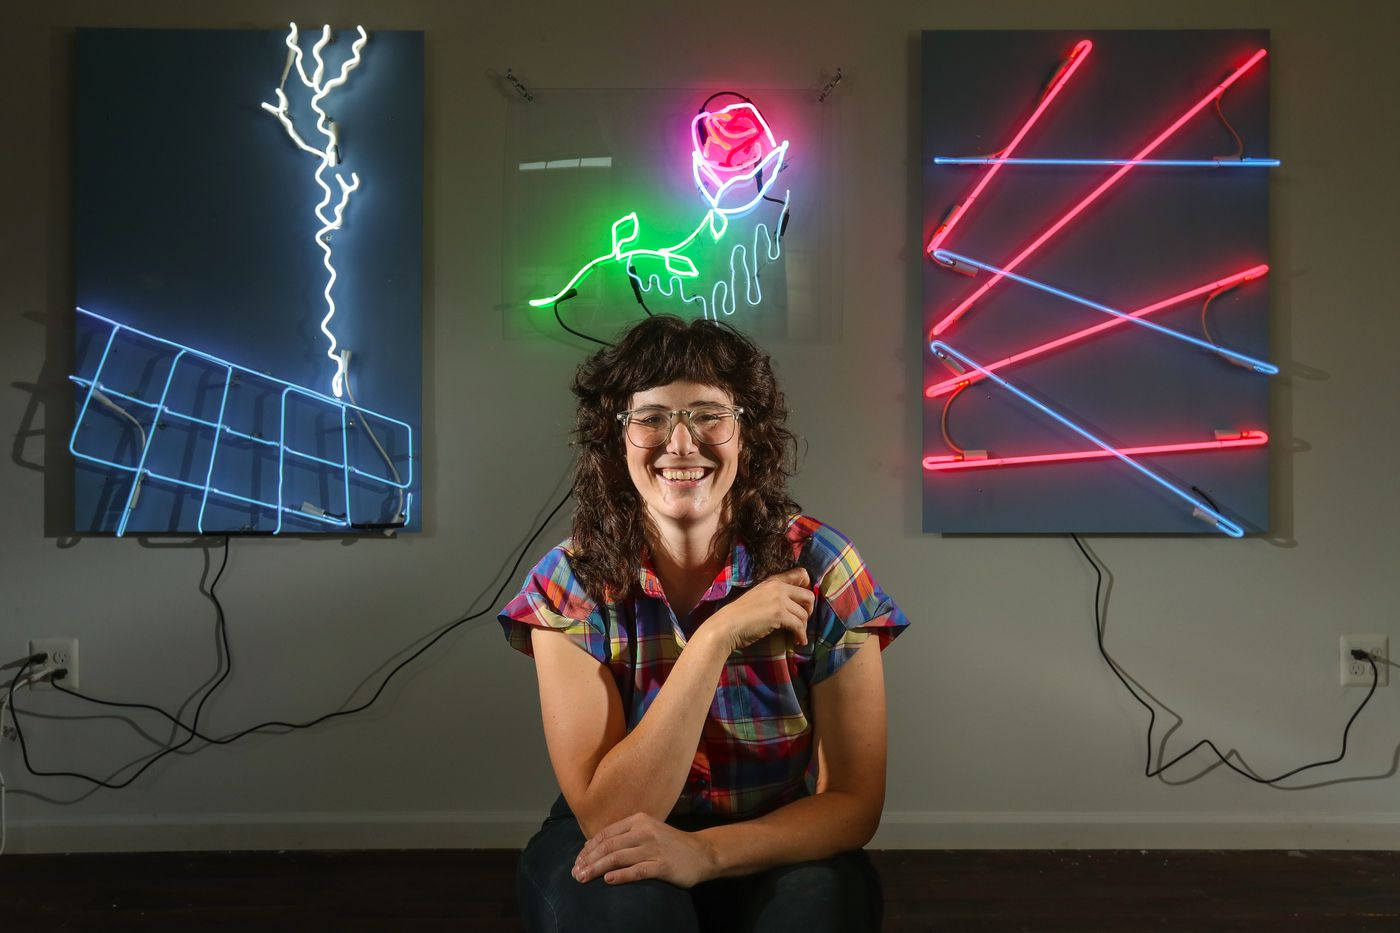 Neon Sign Artist Learned From a Delaware County Master